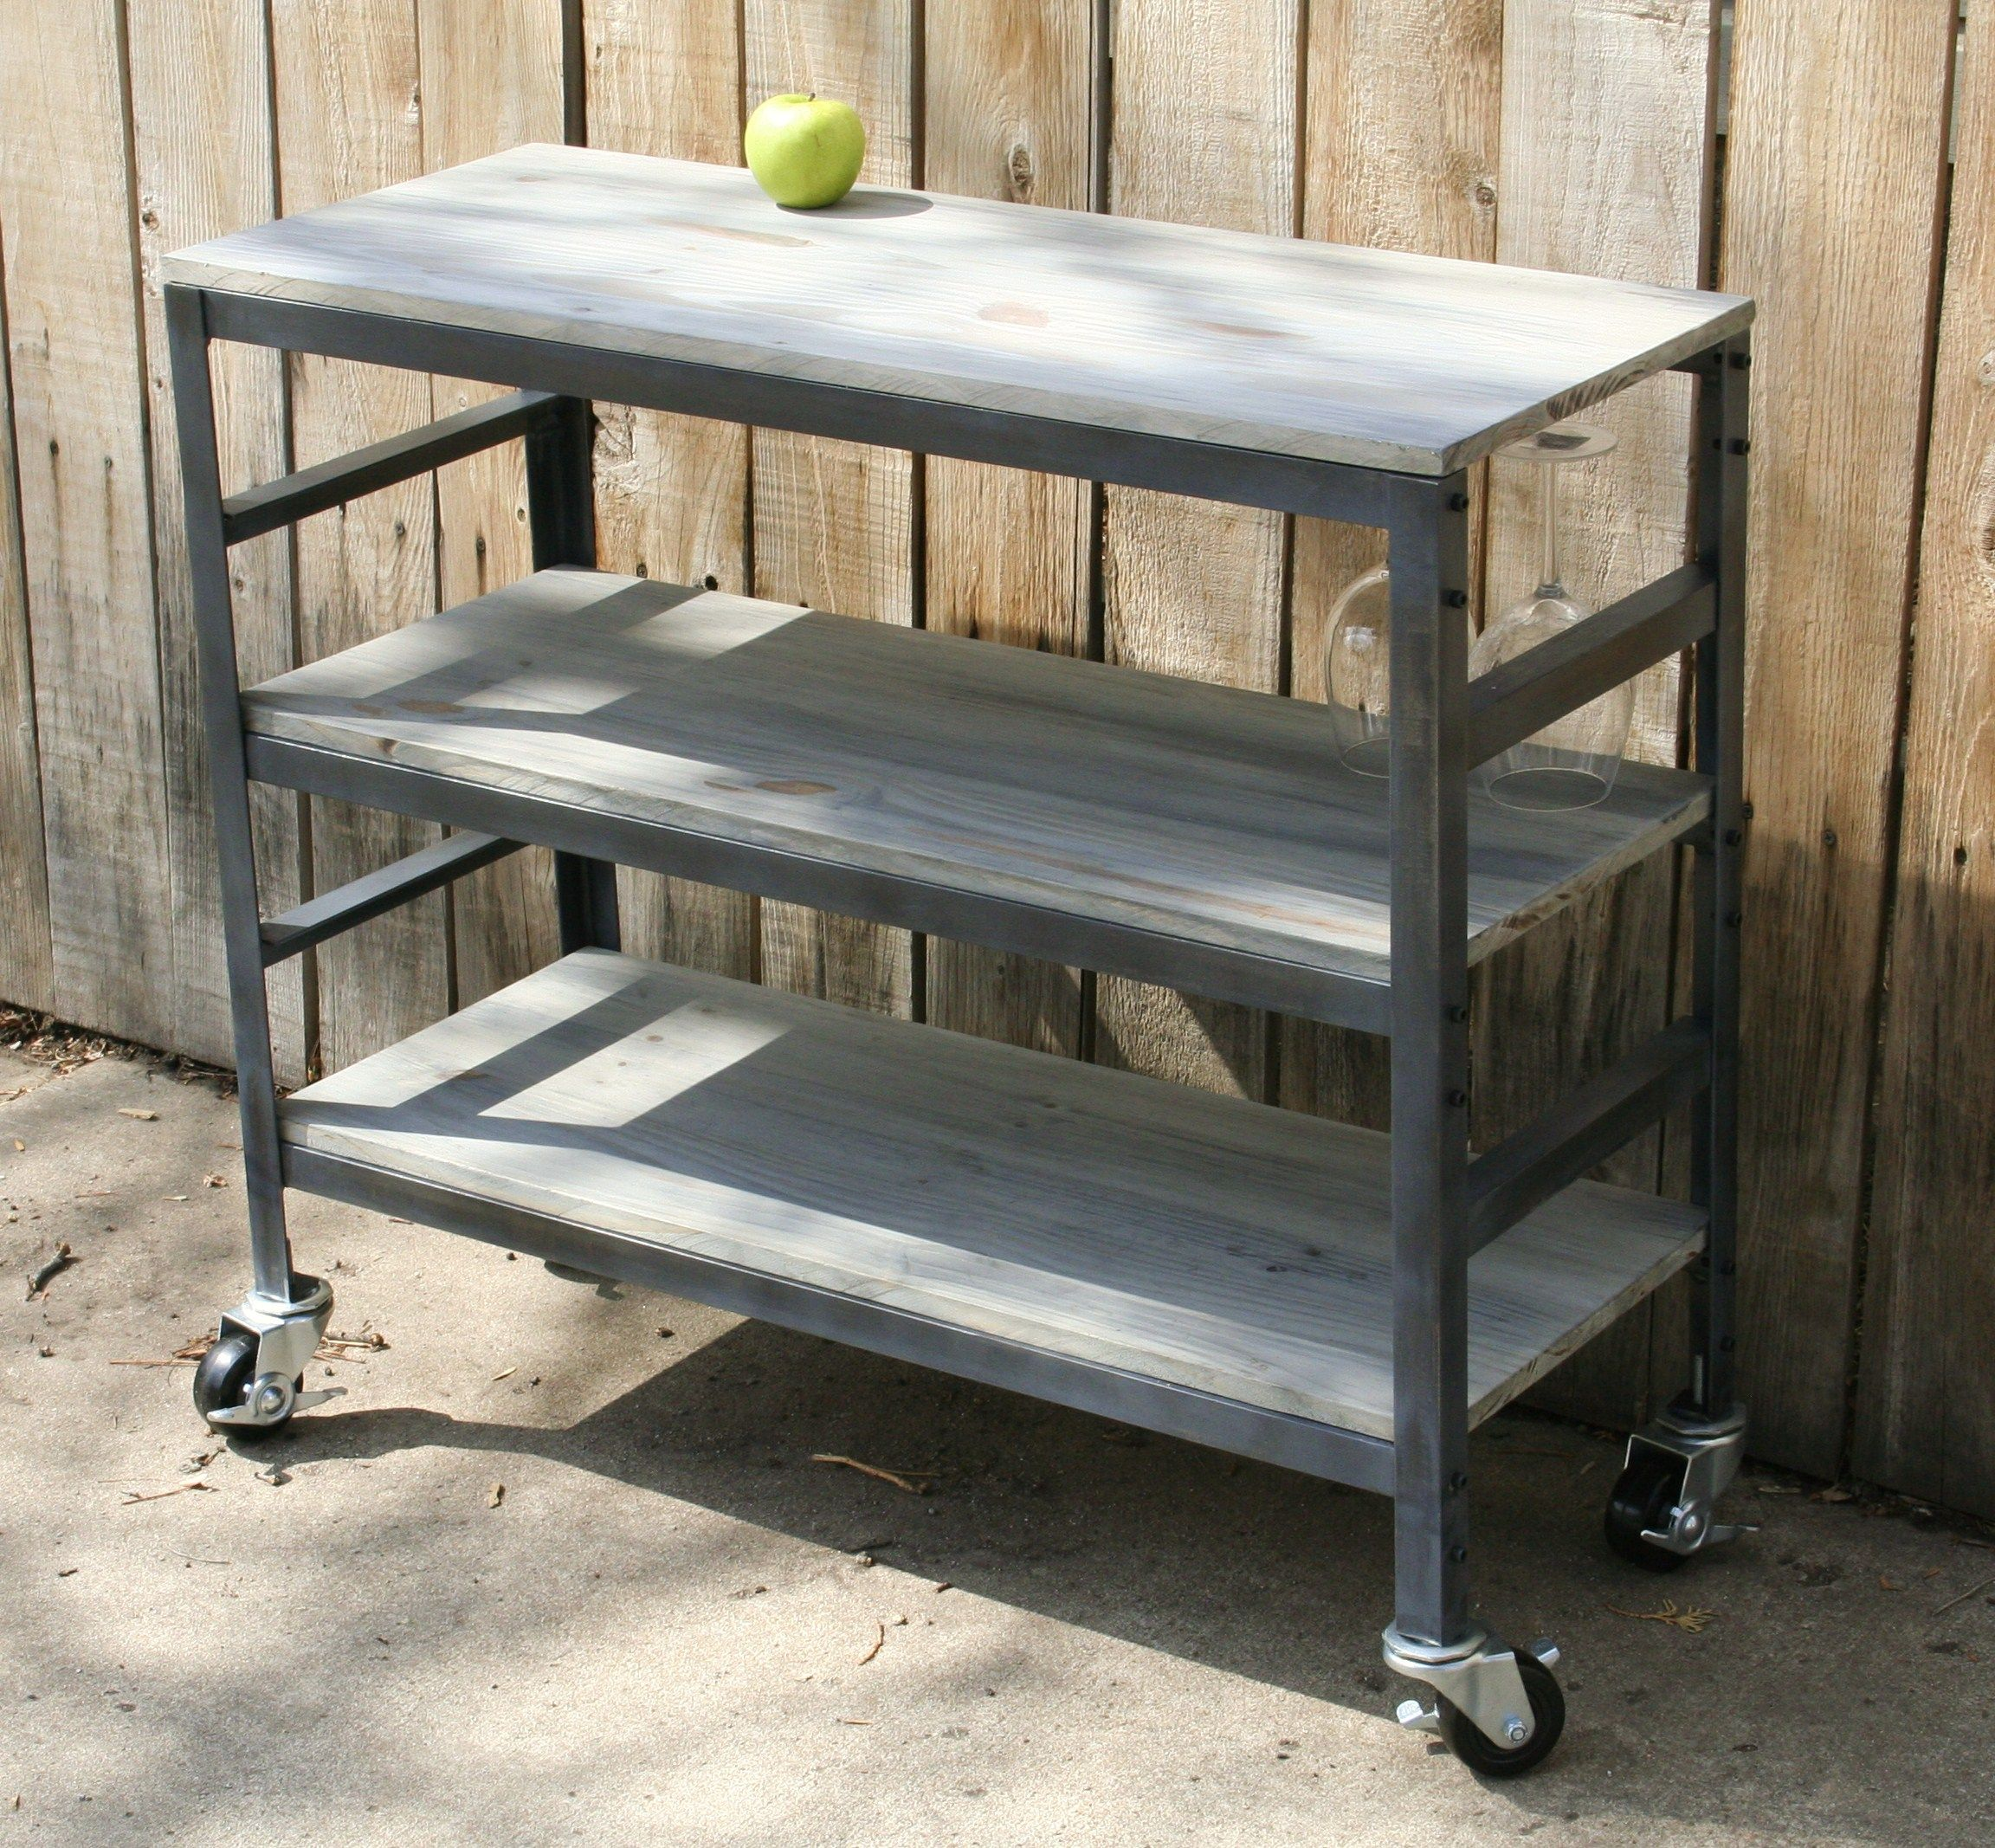 DIY idea | Small kitchen | Pinterest | Kitchen utility cart, Kitchen Diy Utility Cart Kitchen on diy kitchen decor, diy kitchen storage cabinet, diy small kitchen table, diy kitchen island cart, diy microwave cart, diy kitchen racks, diy home decorating ideas, diy kitchen trailer, diy kitchen range hoods, diy kitchen shelves, diy kitchen cabinet doors,